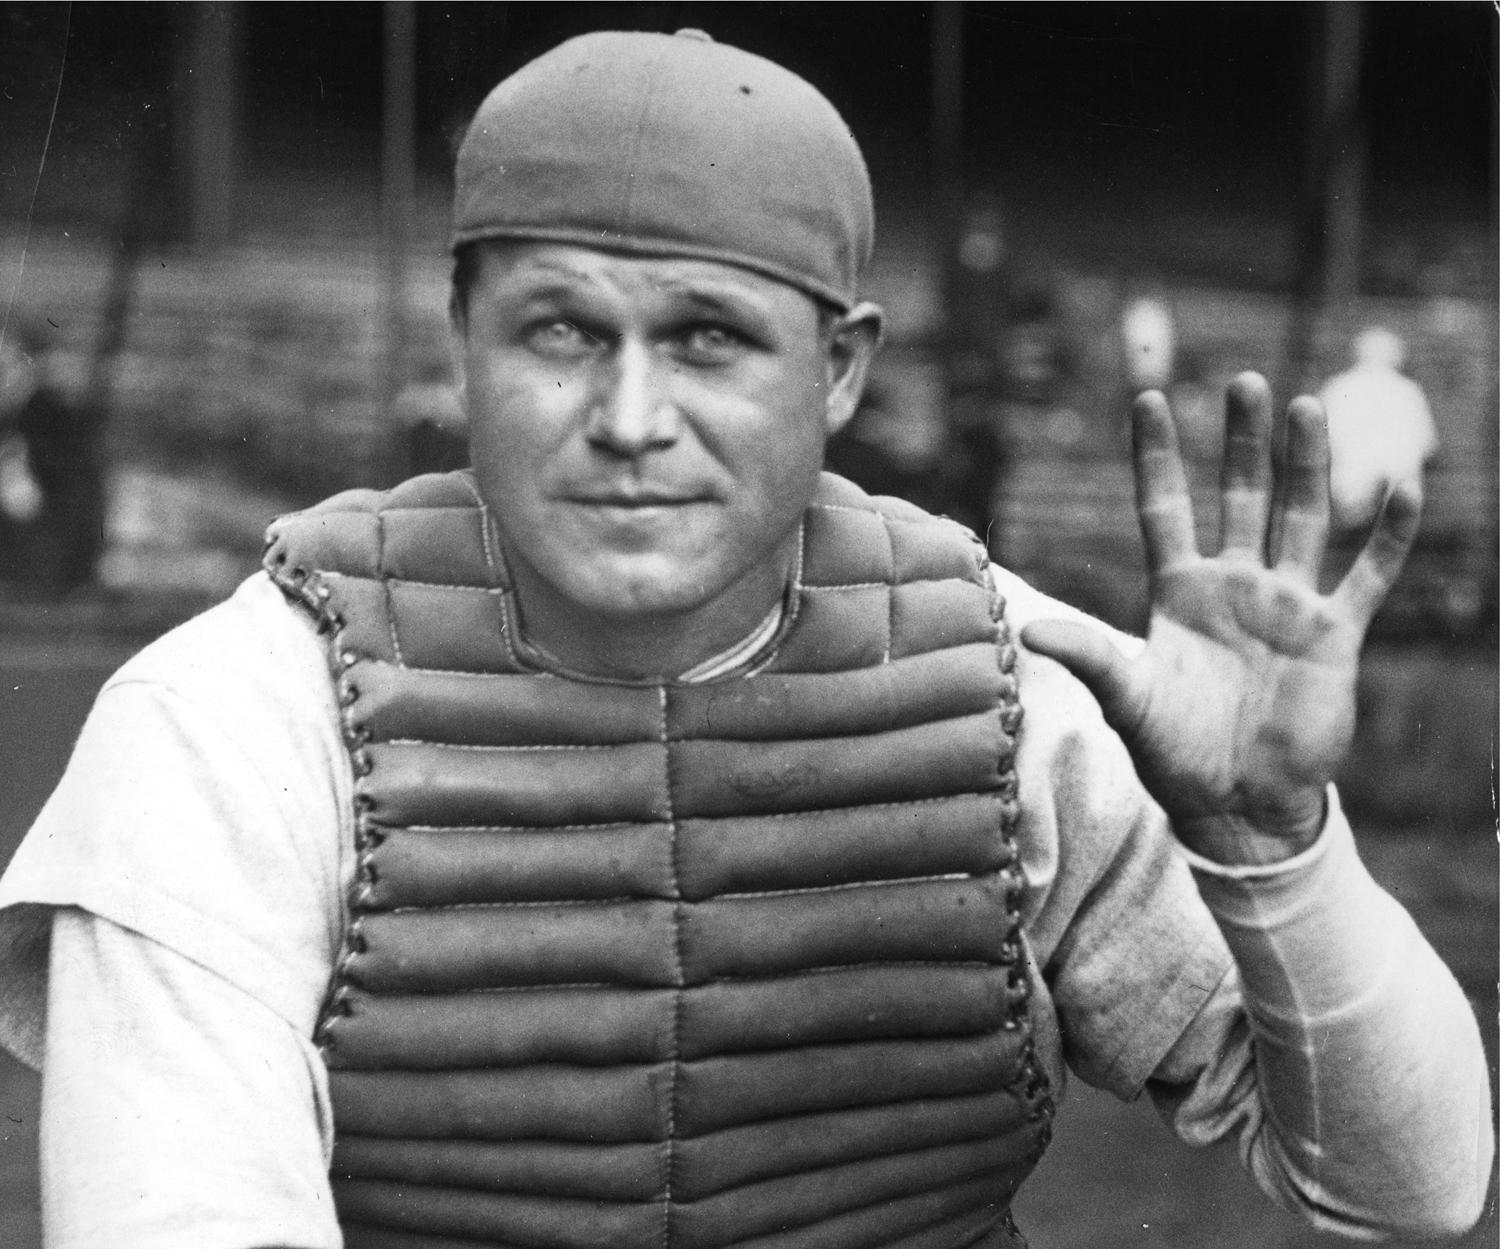 Primarily a first baseman, Jimmie Foxx spent 108 games behind the plate. In Foxx's 20-year career, he brought home three Most Valuable Player Awards and was a nine-time All-Star. (National Baseball Hall of Fame and Museum)